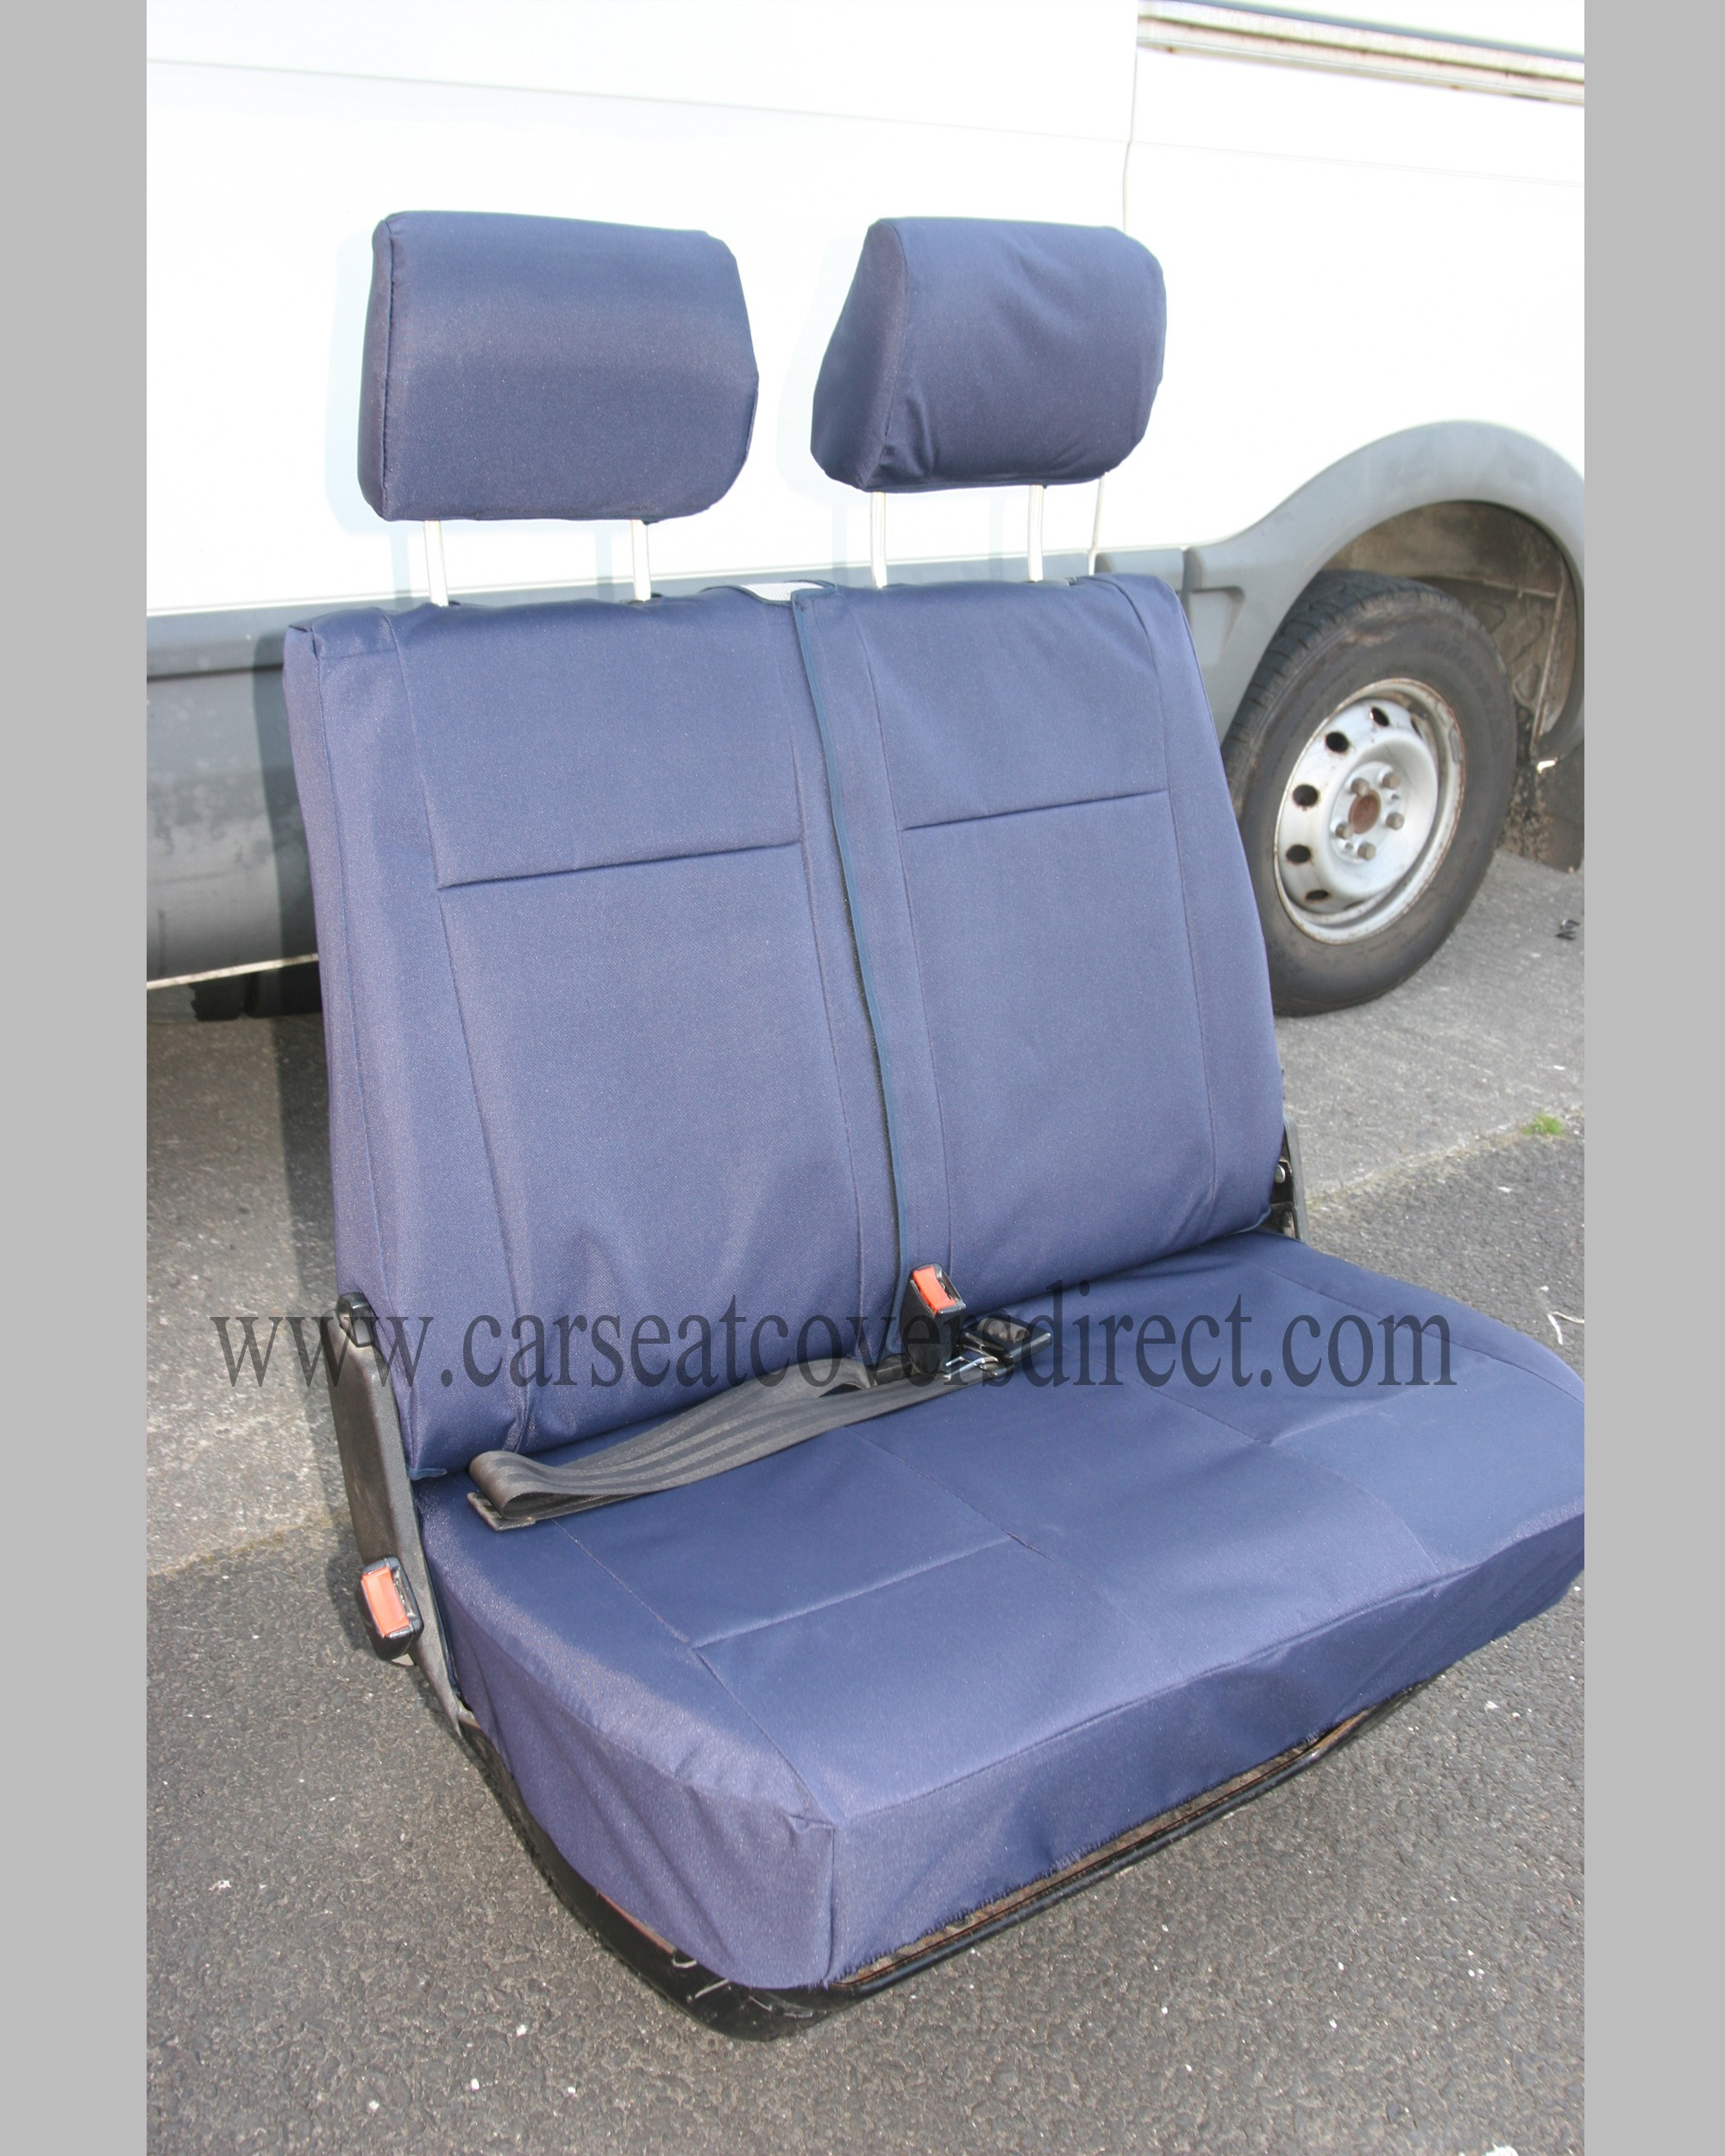 VOLKSWAGEN VW Transporter T4 Heavy Duty Seat Covers